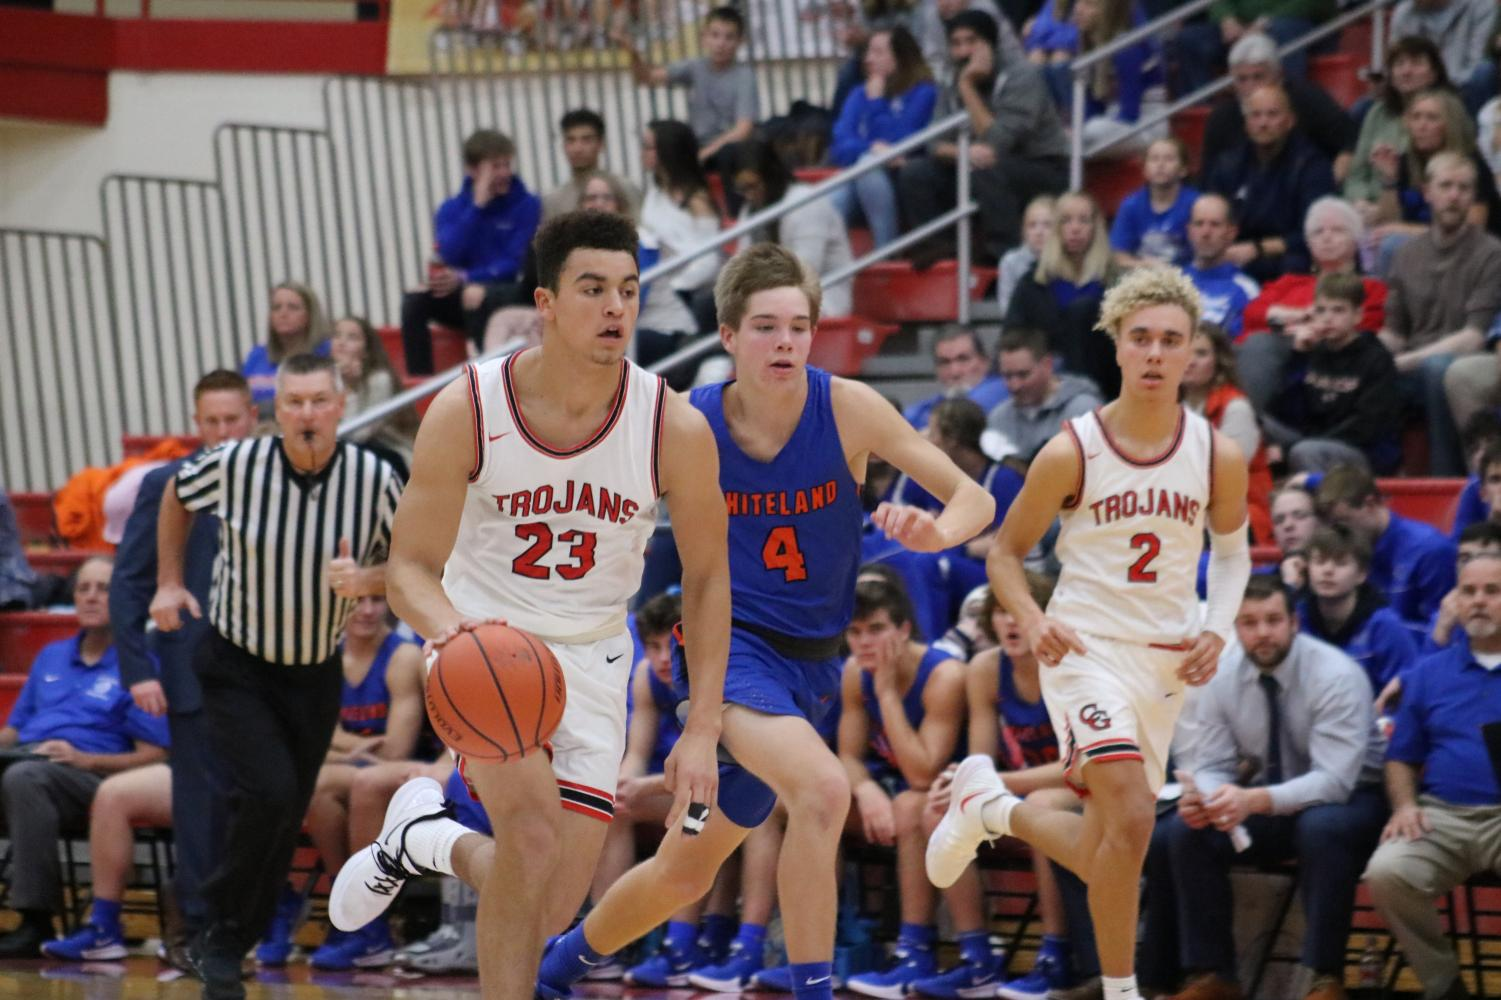 Junior Leyton Mcgovern dribbles the ball down the court during the Trojans' second match against Whiteland, followed closely by sophomore Tayven Jackson.